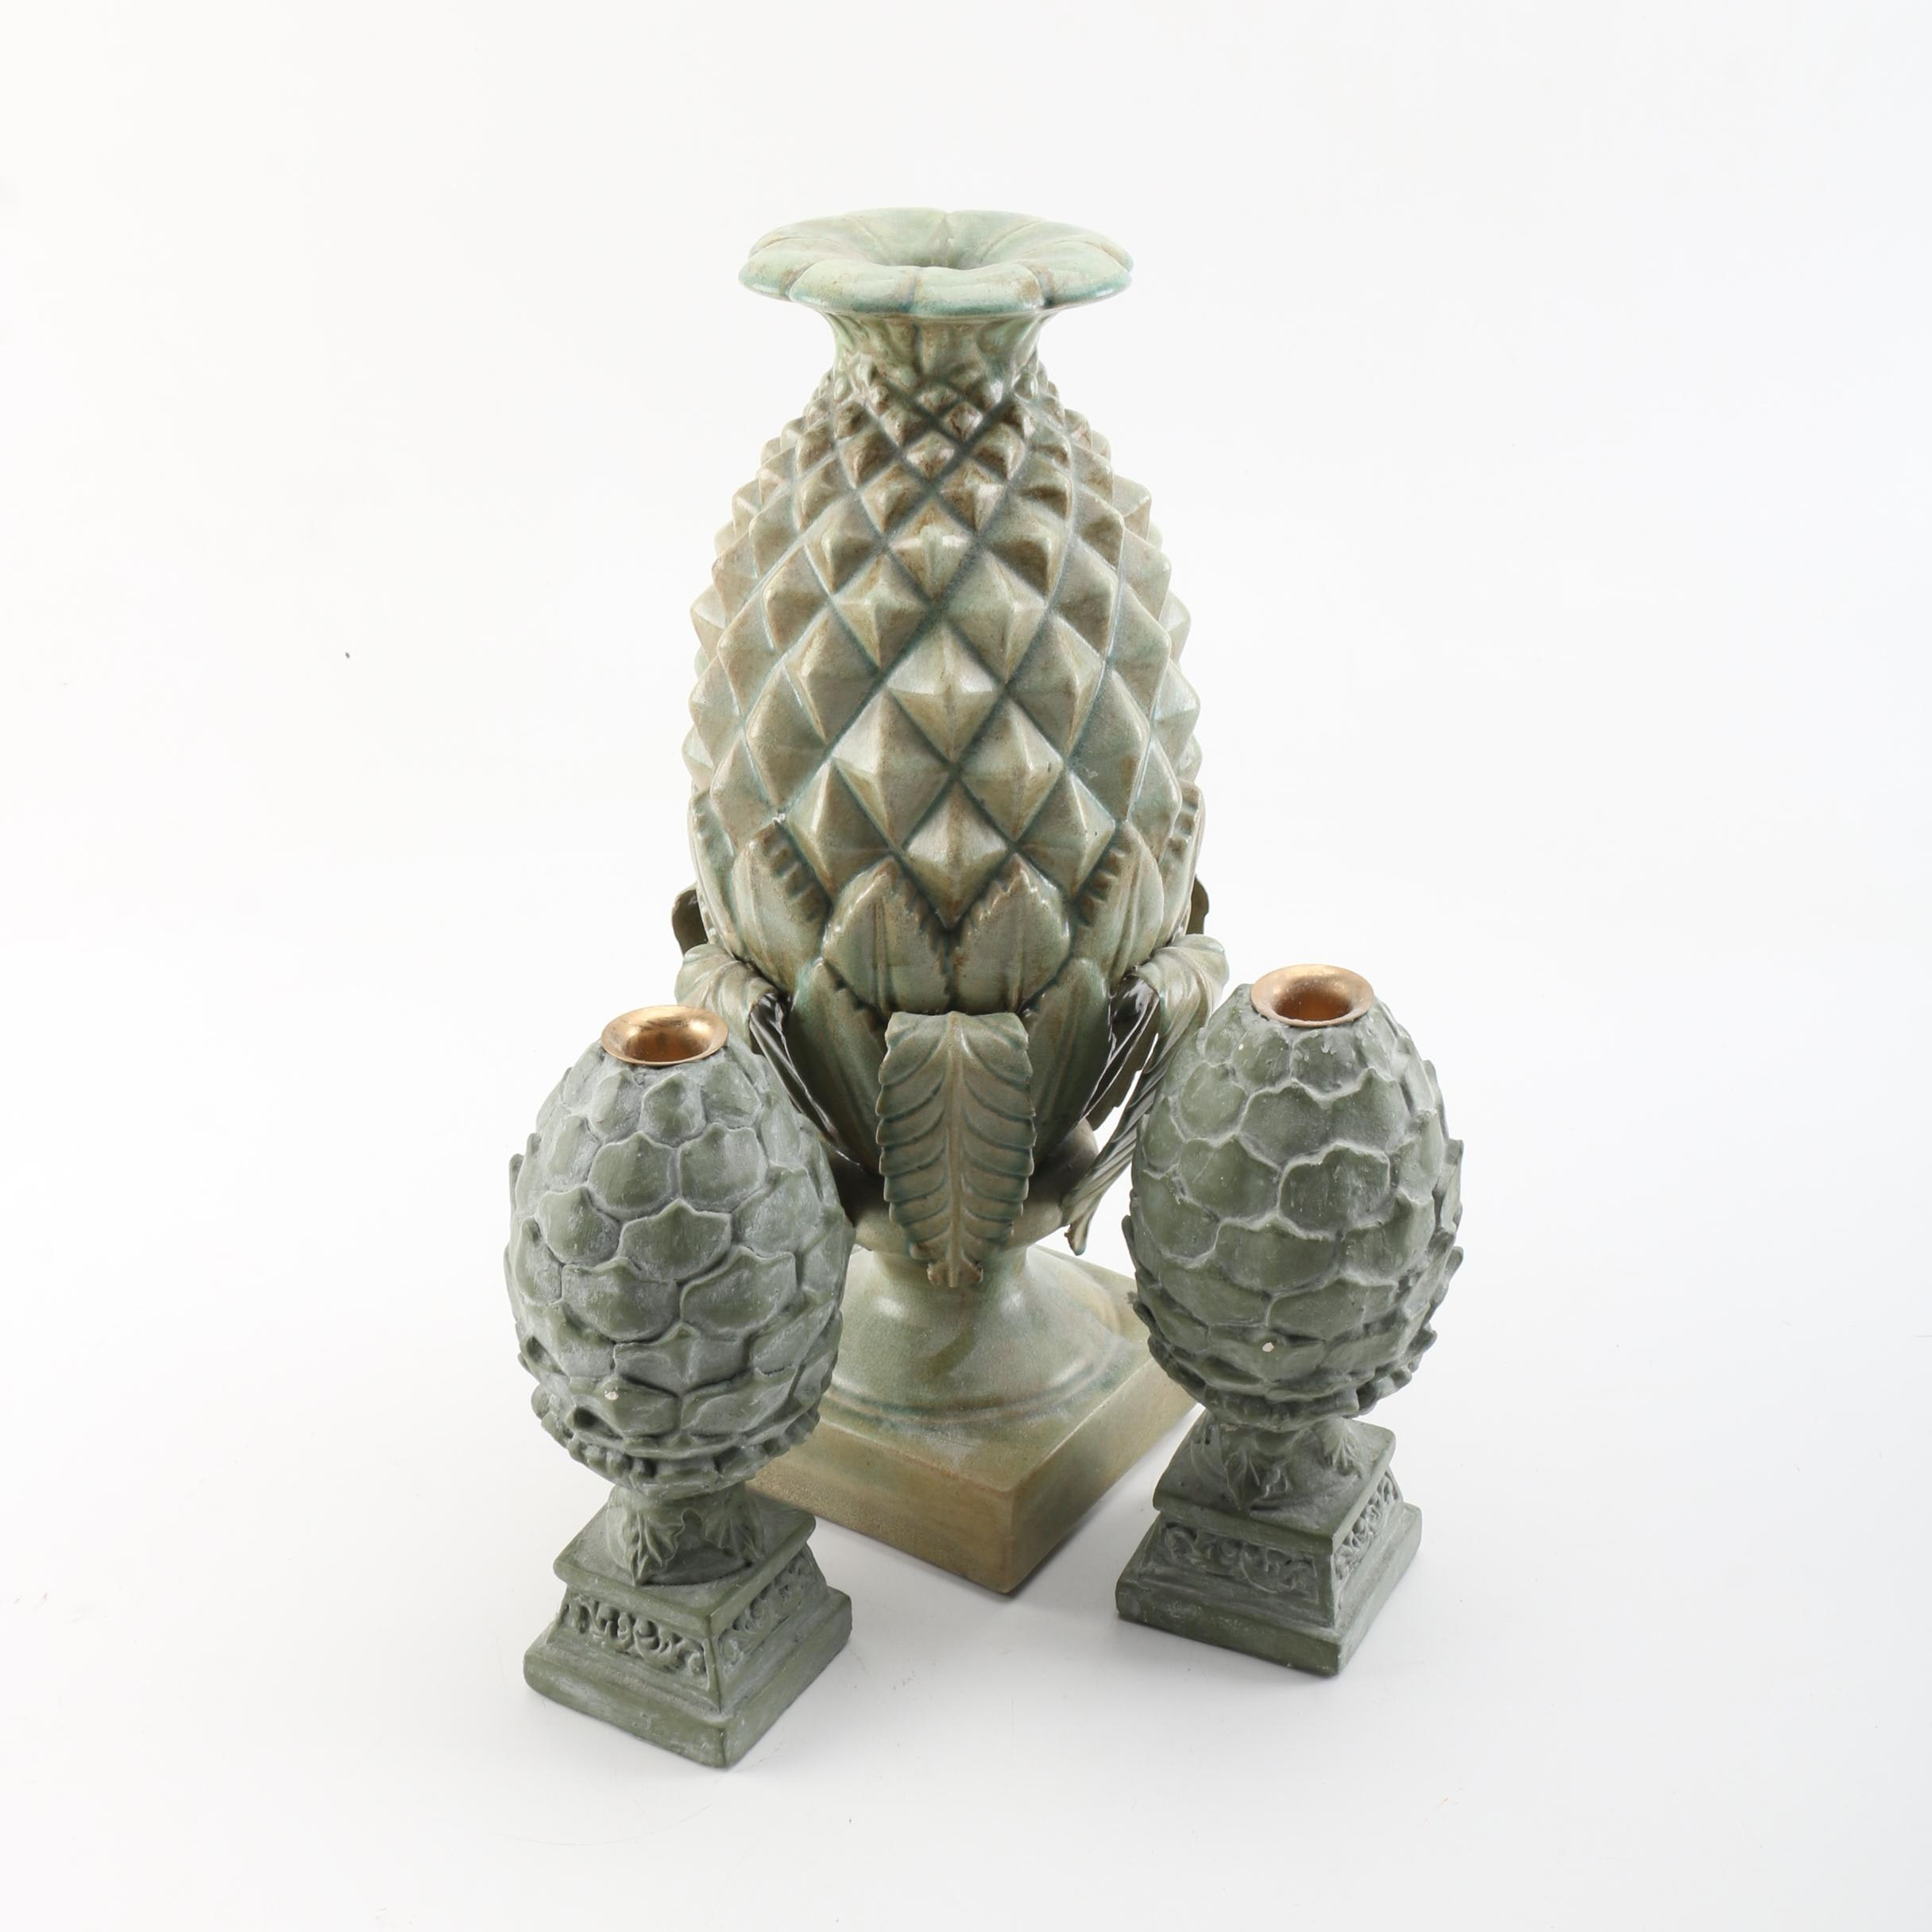 Pineapple and Artichoke Style Candle Holders